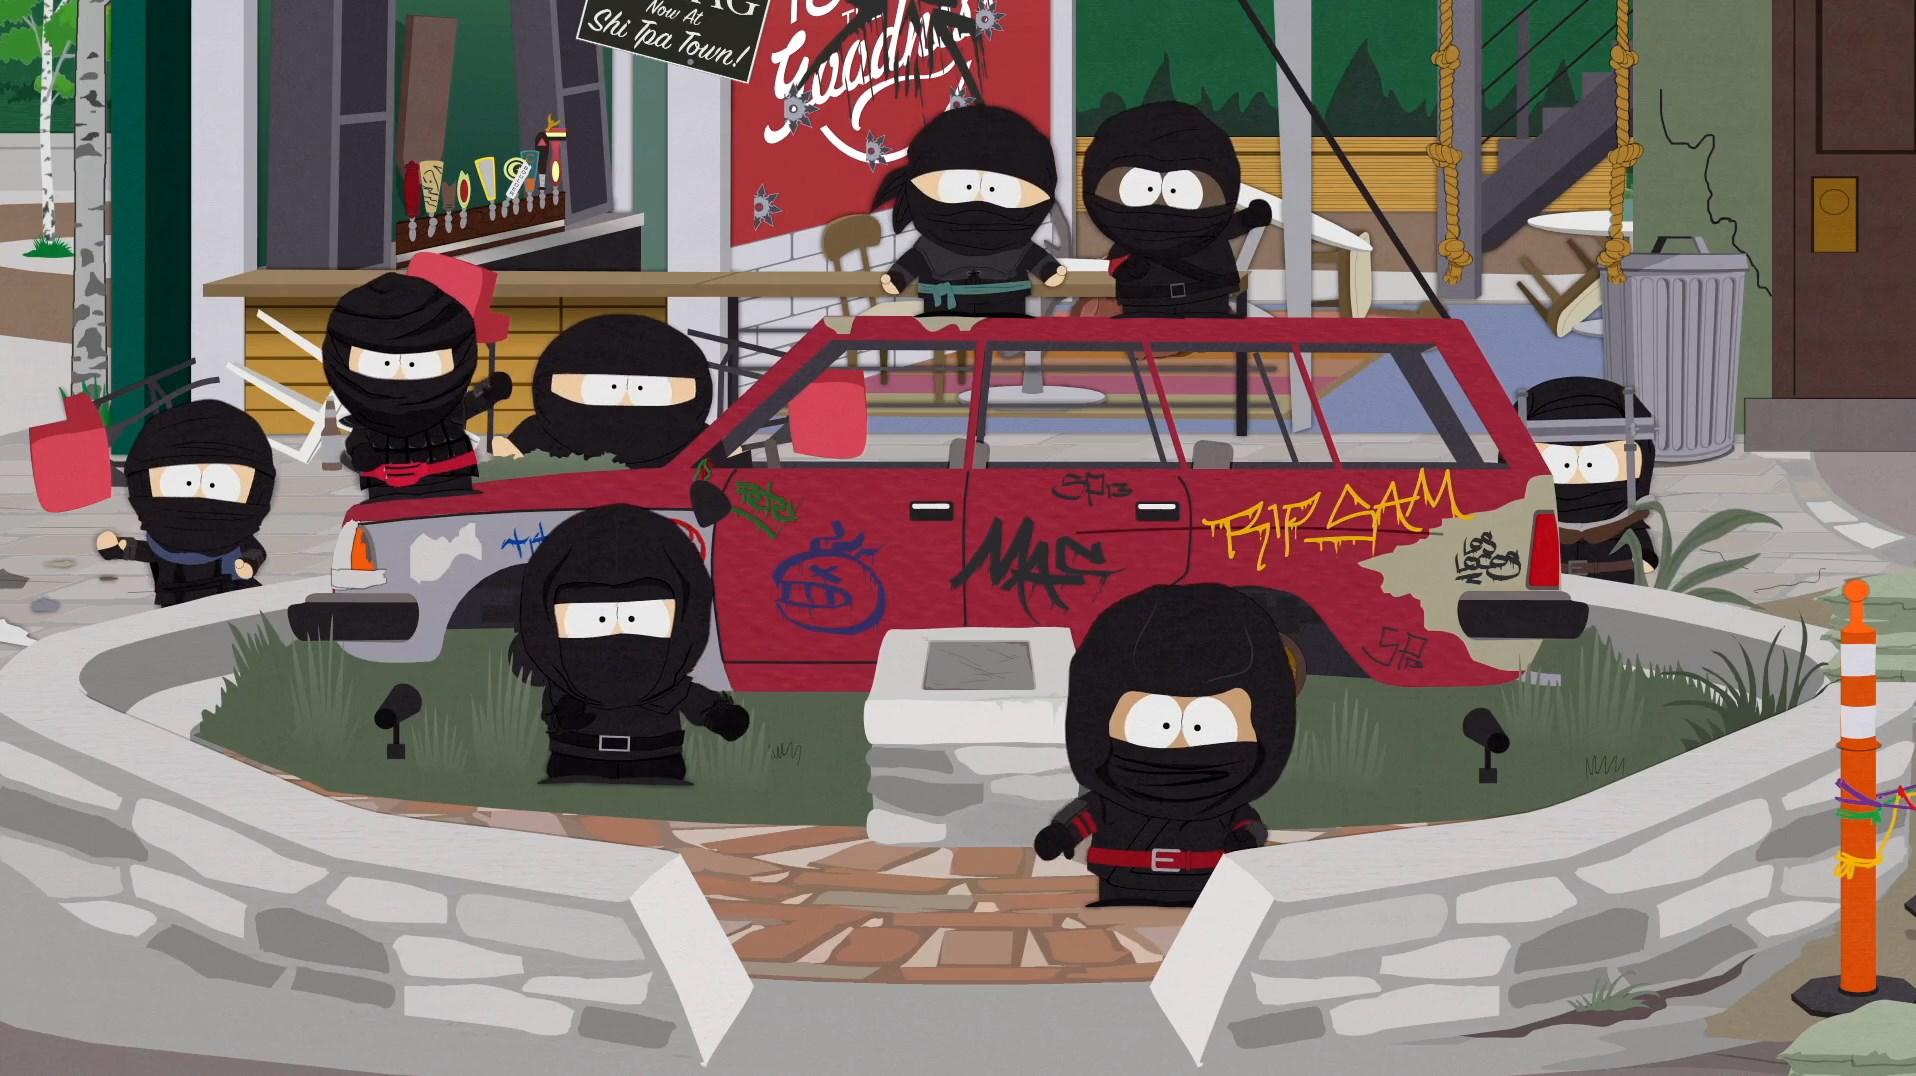 South Park S19 Completa|1080p Web-DL|Dual LAT-EN